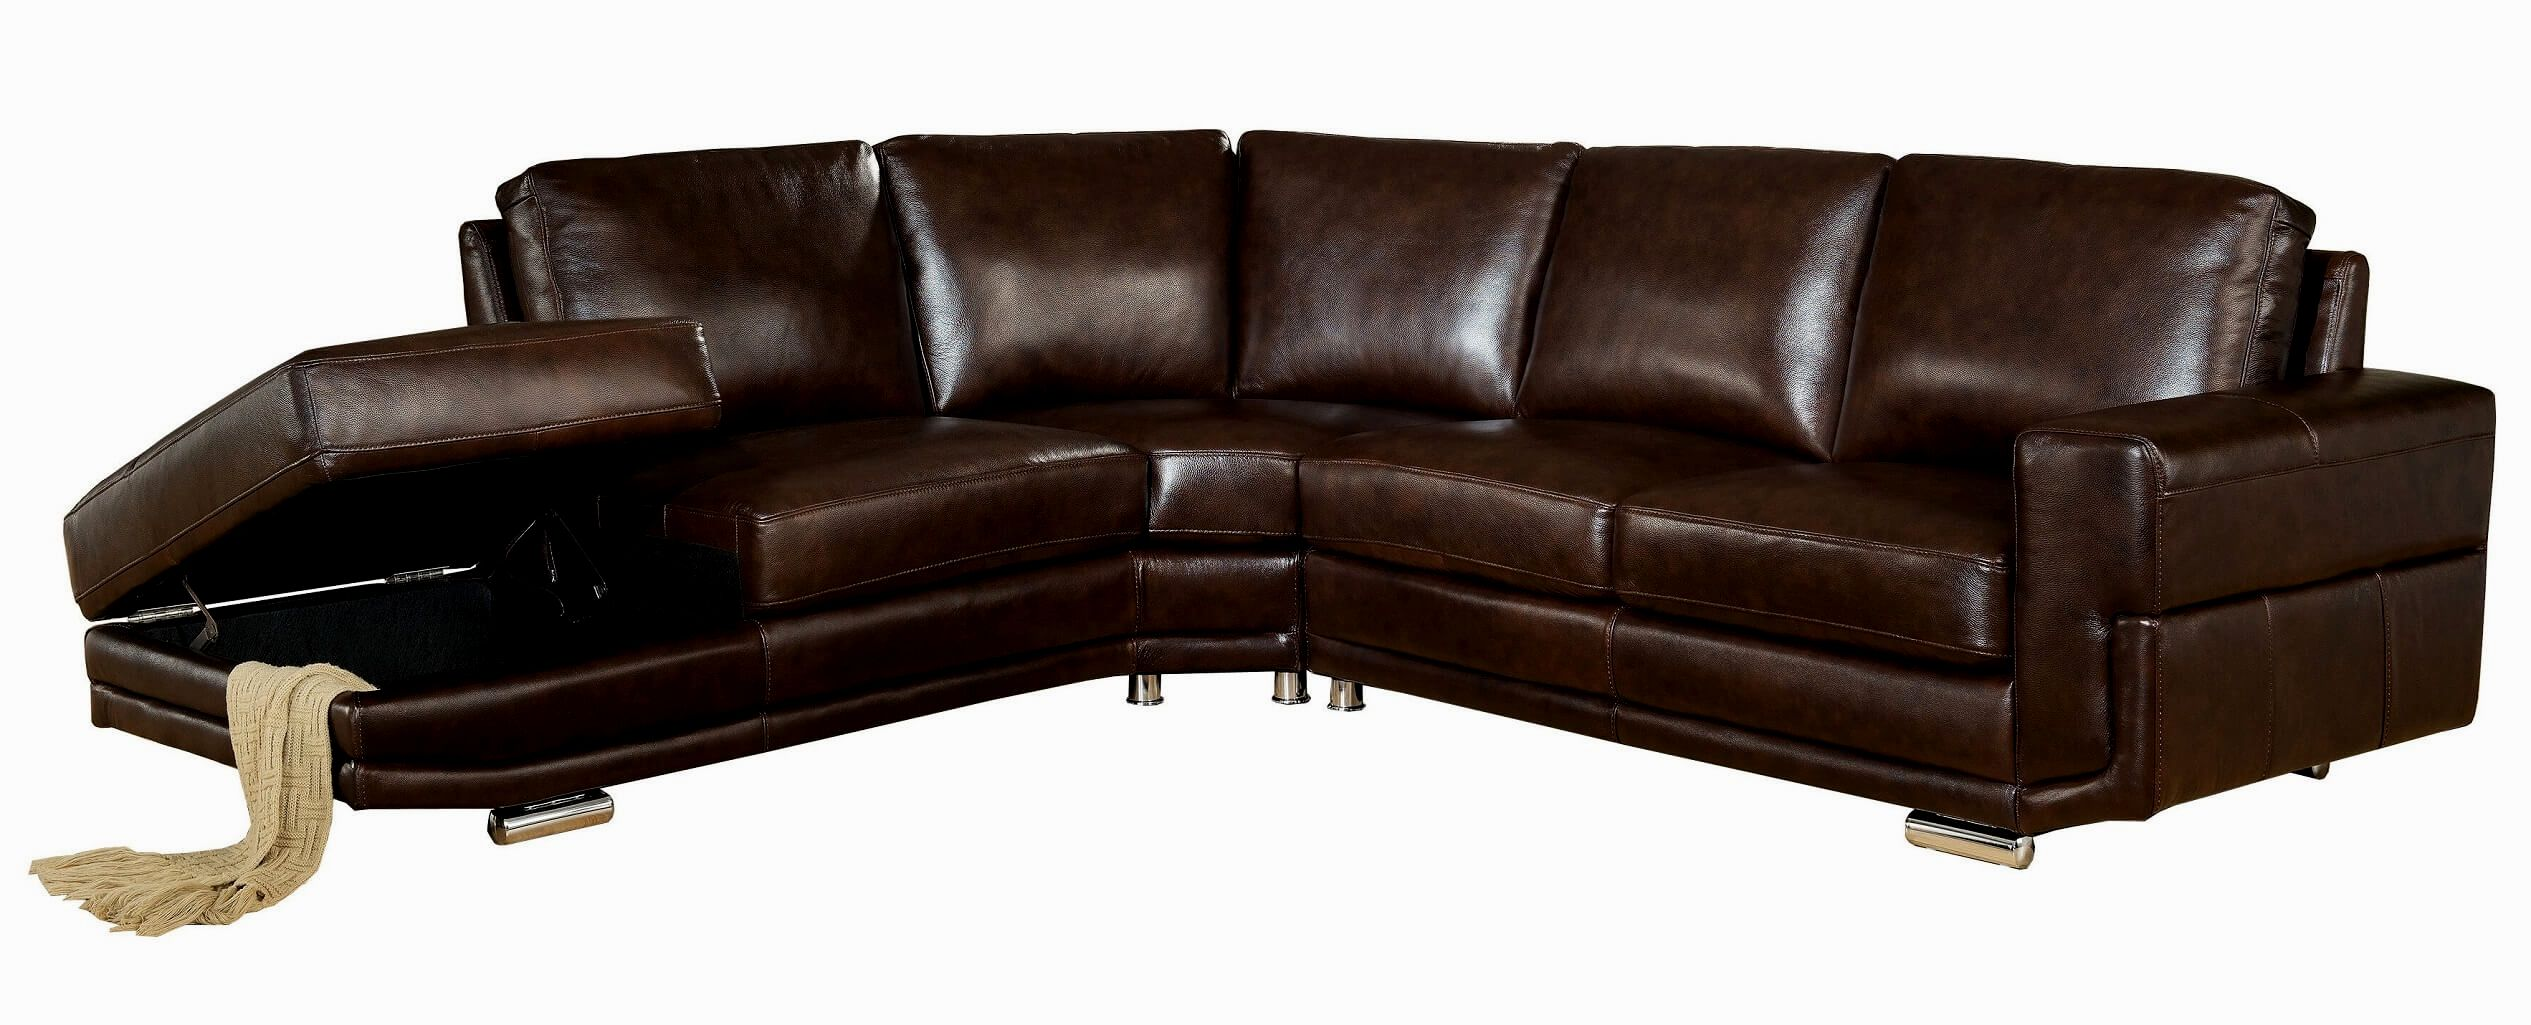 best of lane leather sofa construction-Finest Lane Leather sofa Gallery